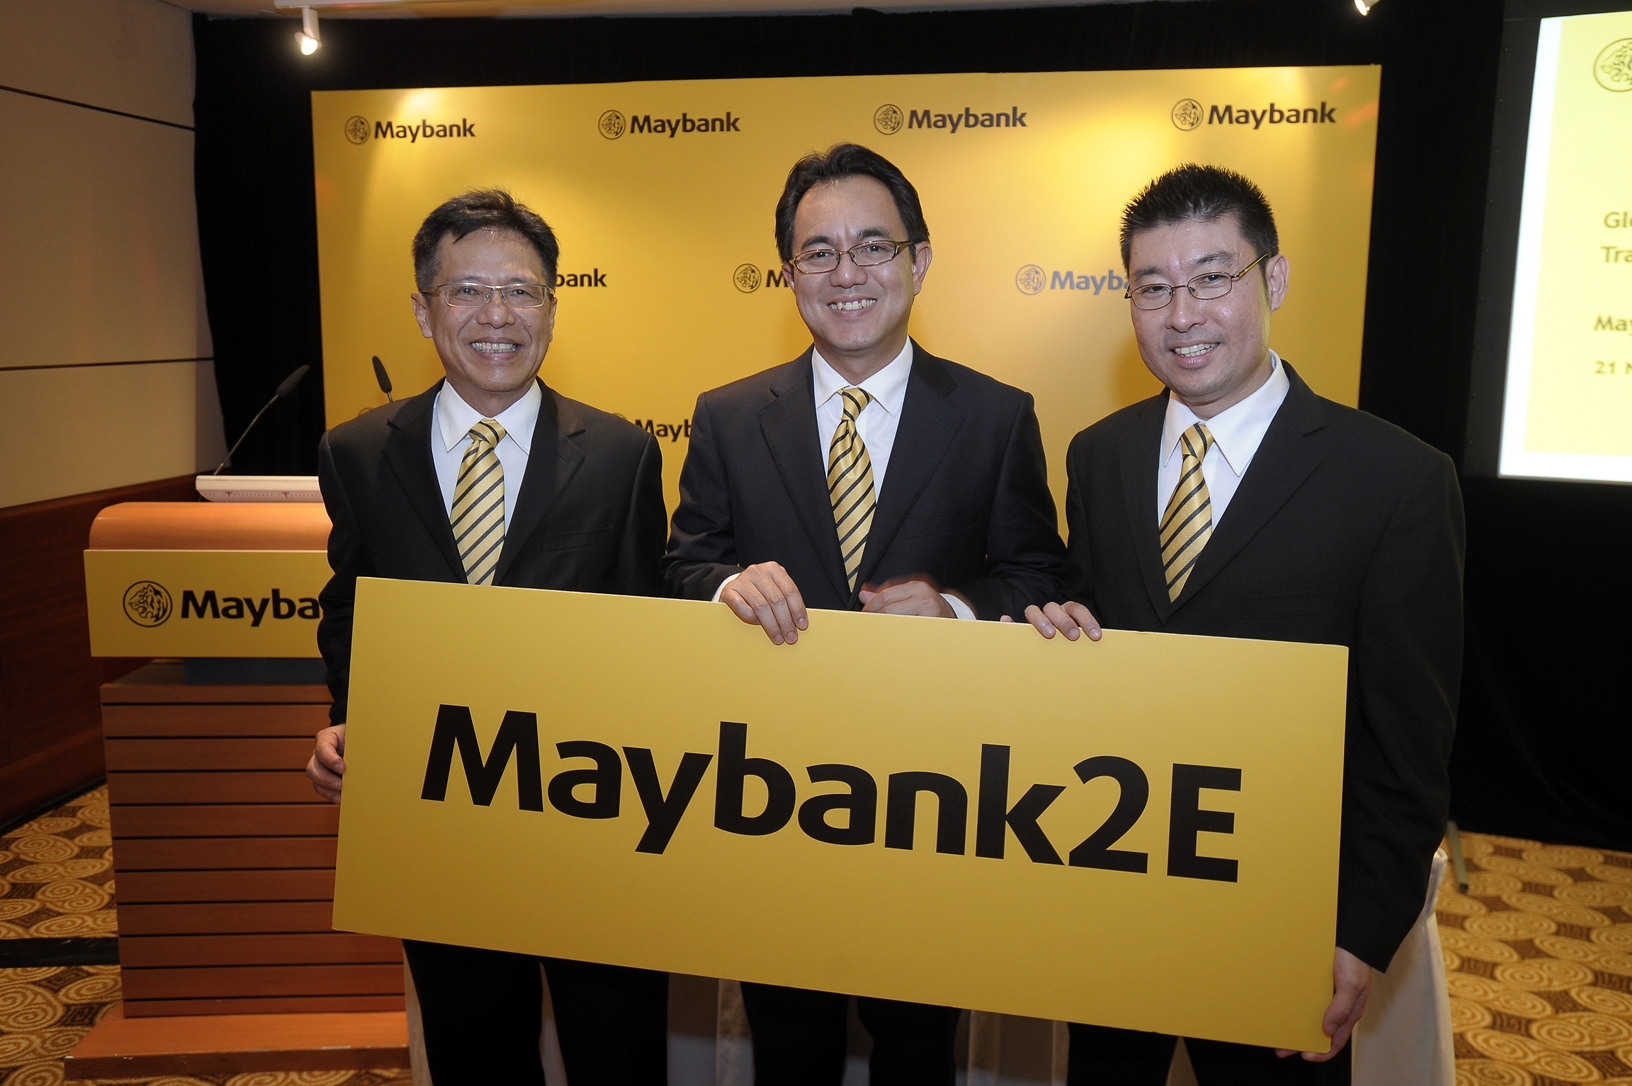 Image from maybank2u.com.sg